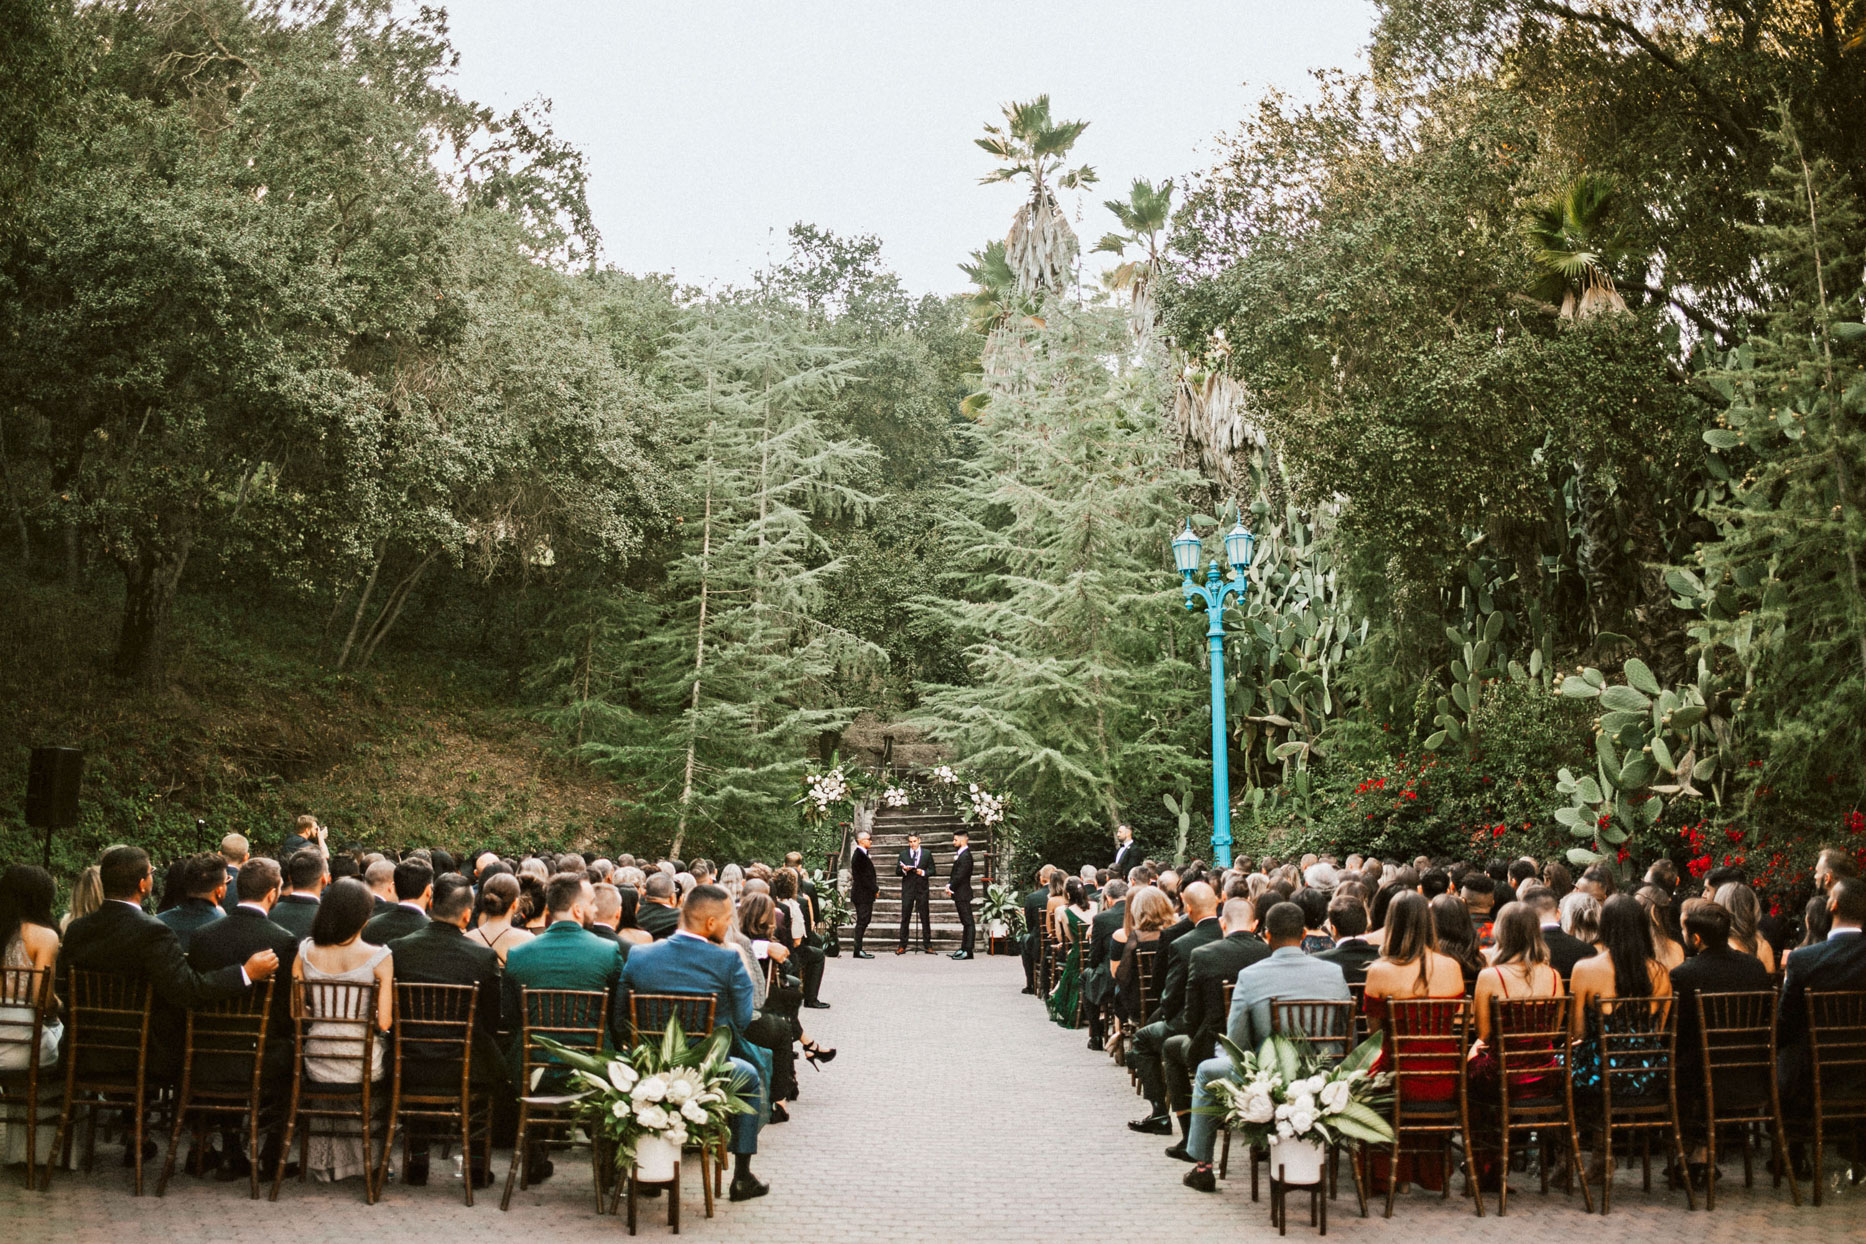 woodland wedding ceremony with guests in brown chairs